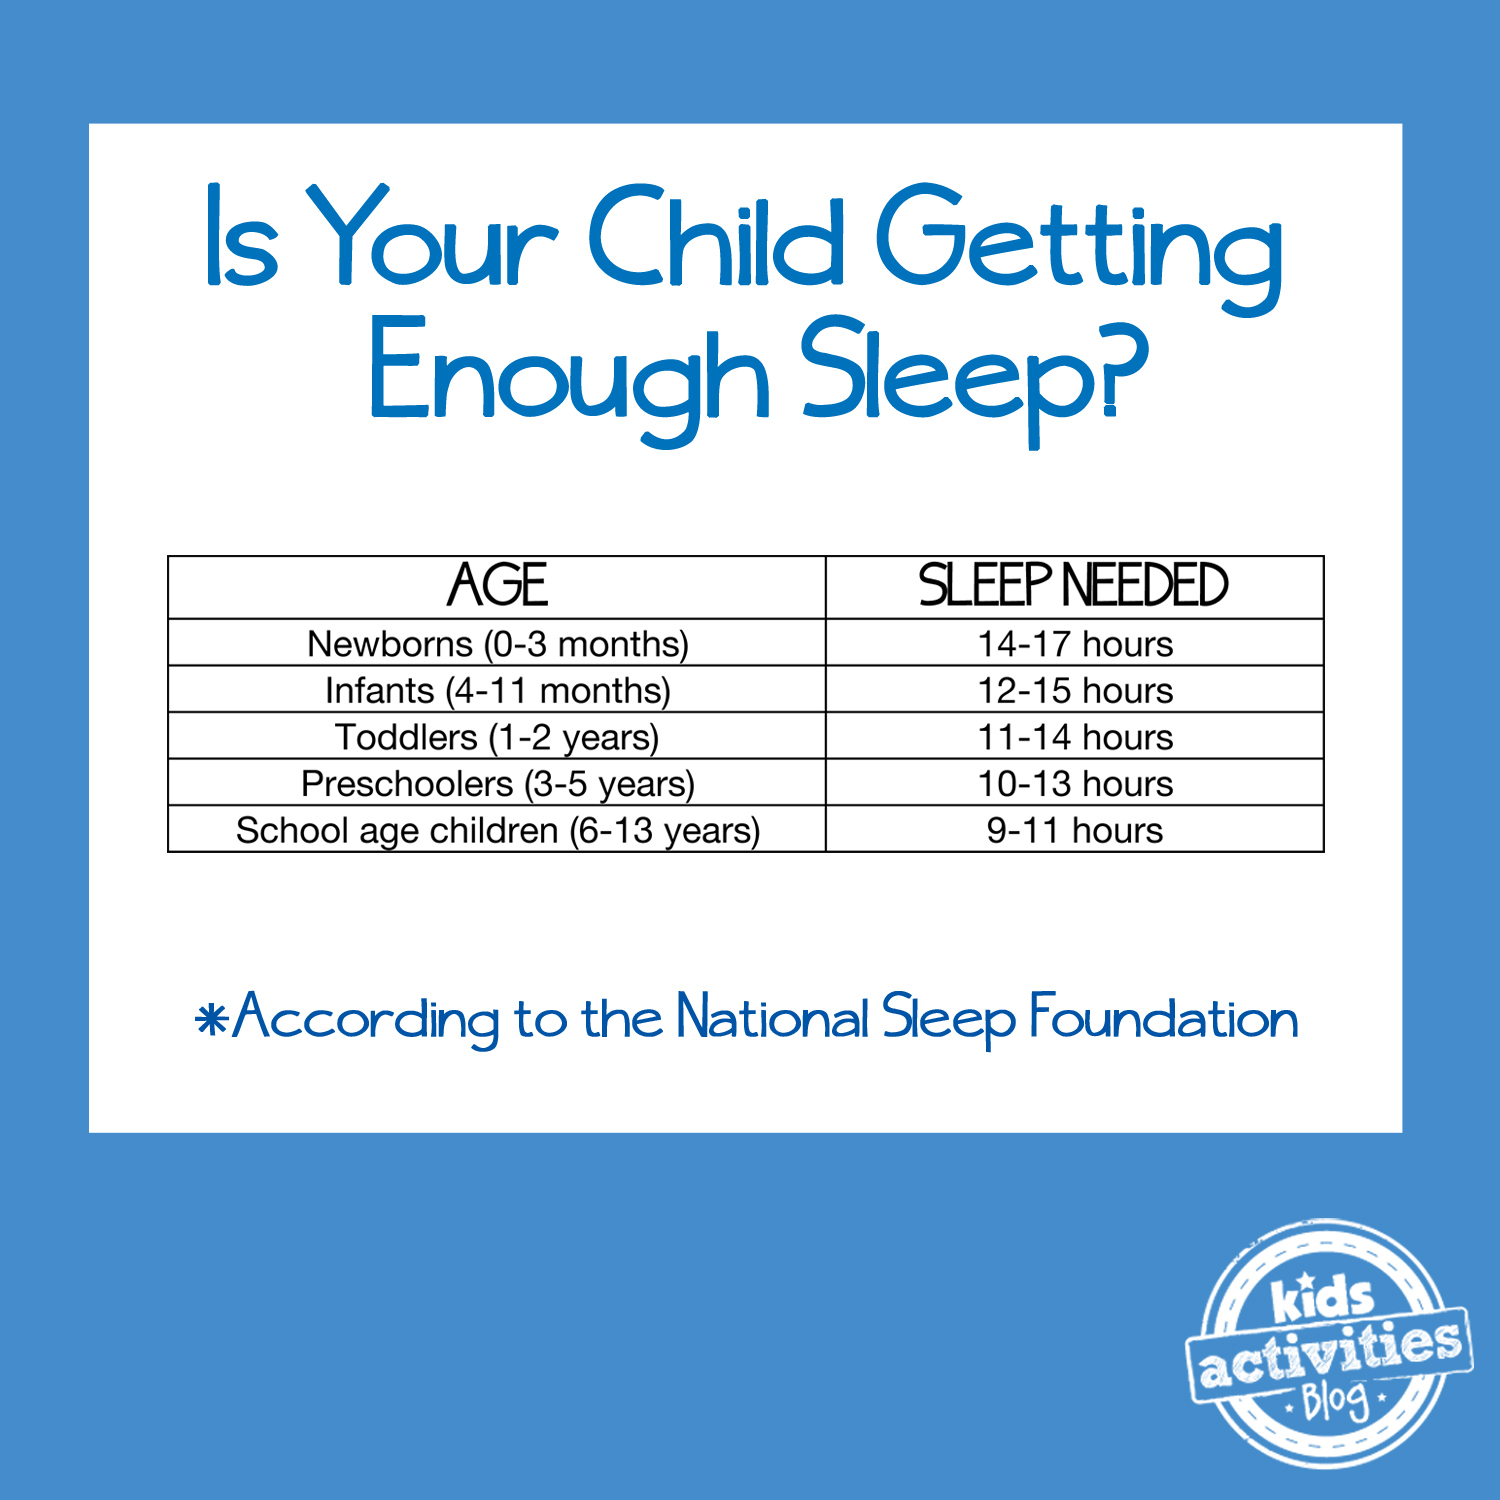 Is Your Child Getting Enough Sleep